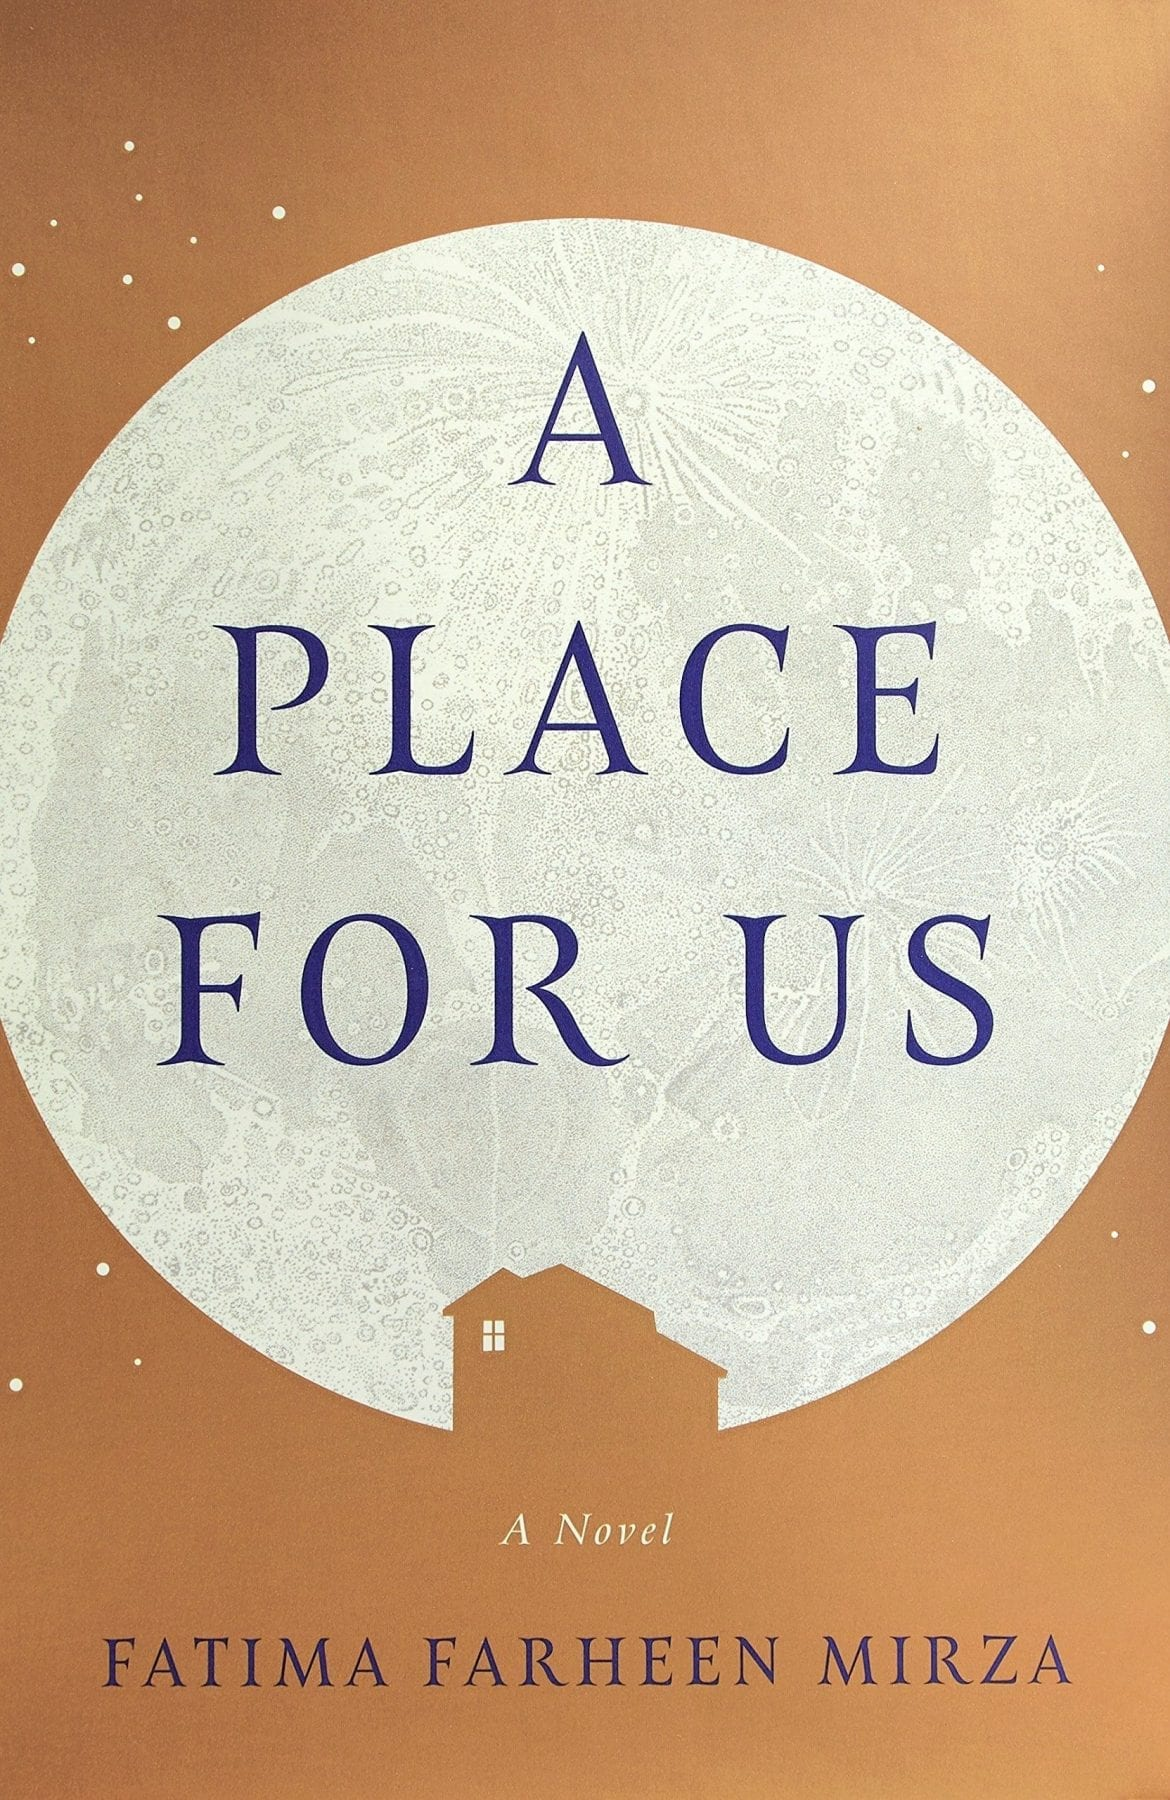 A Place for Us by Fatima Farheen Mirza